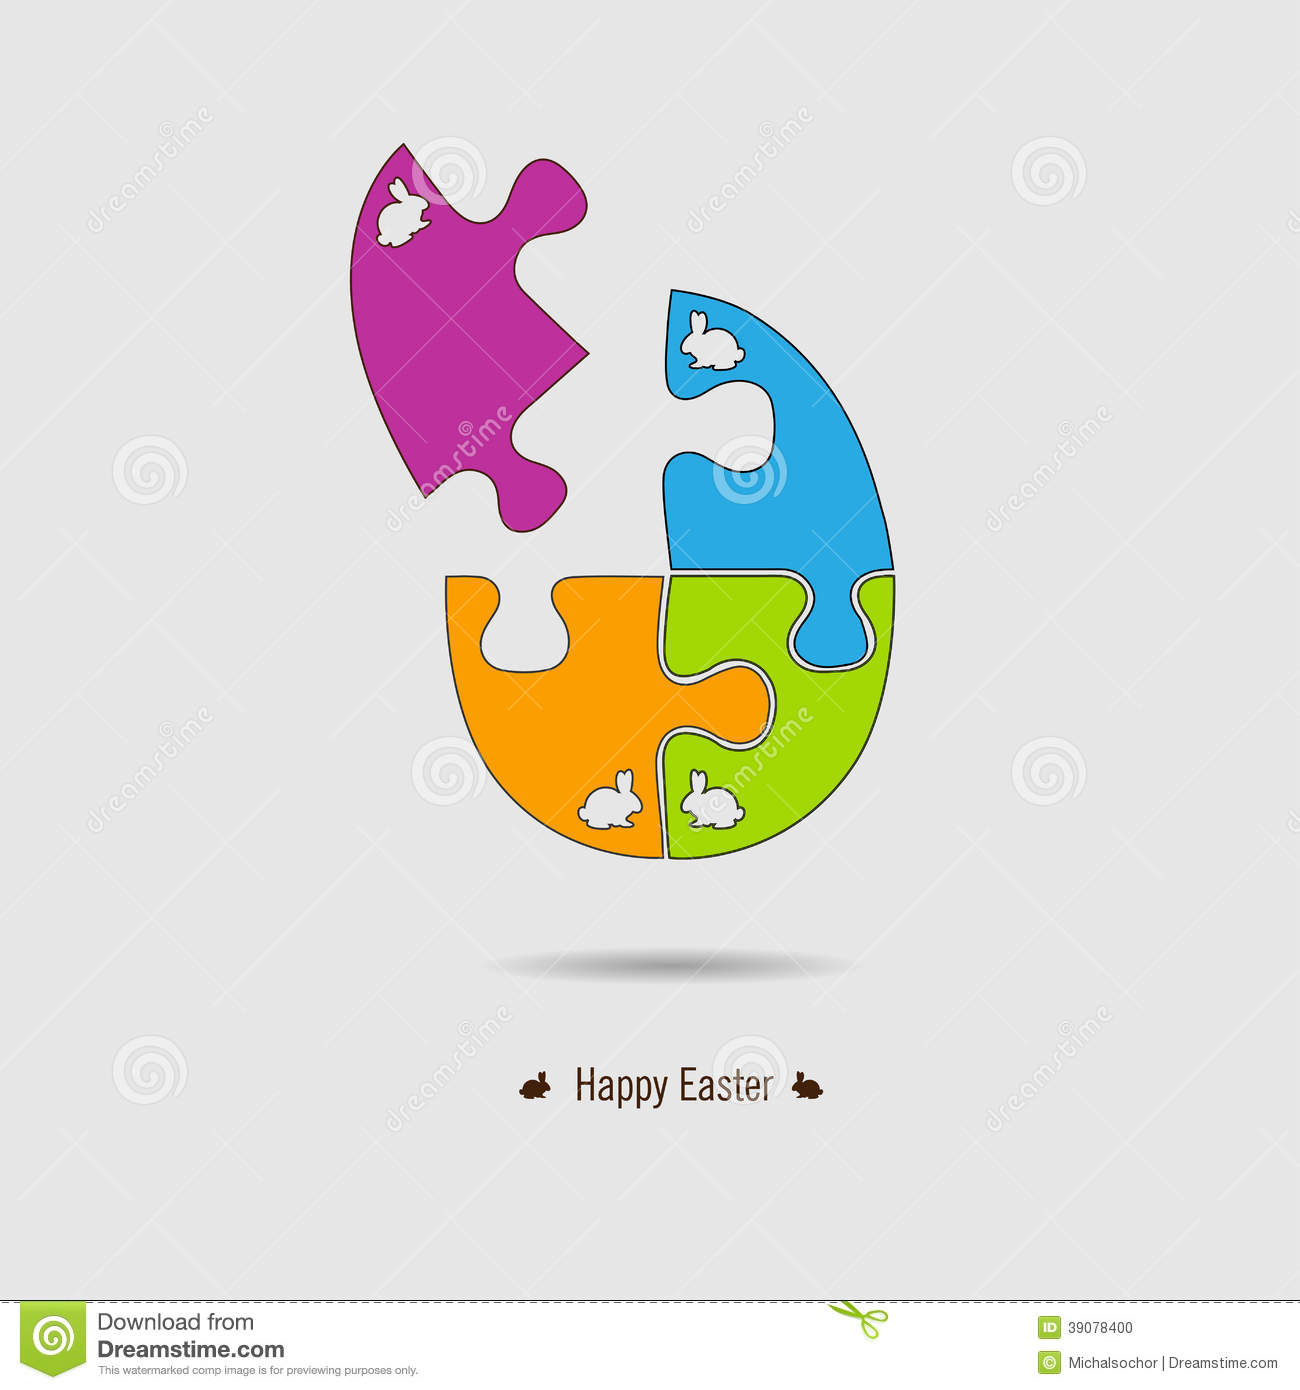 Happy Easter Eff Card. Puzzle. Stock Vector - Image: 39078400